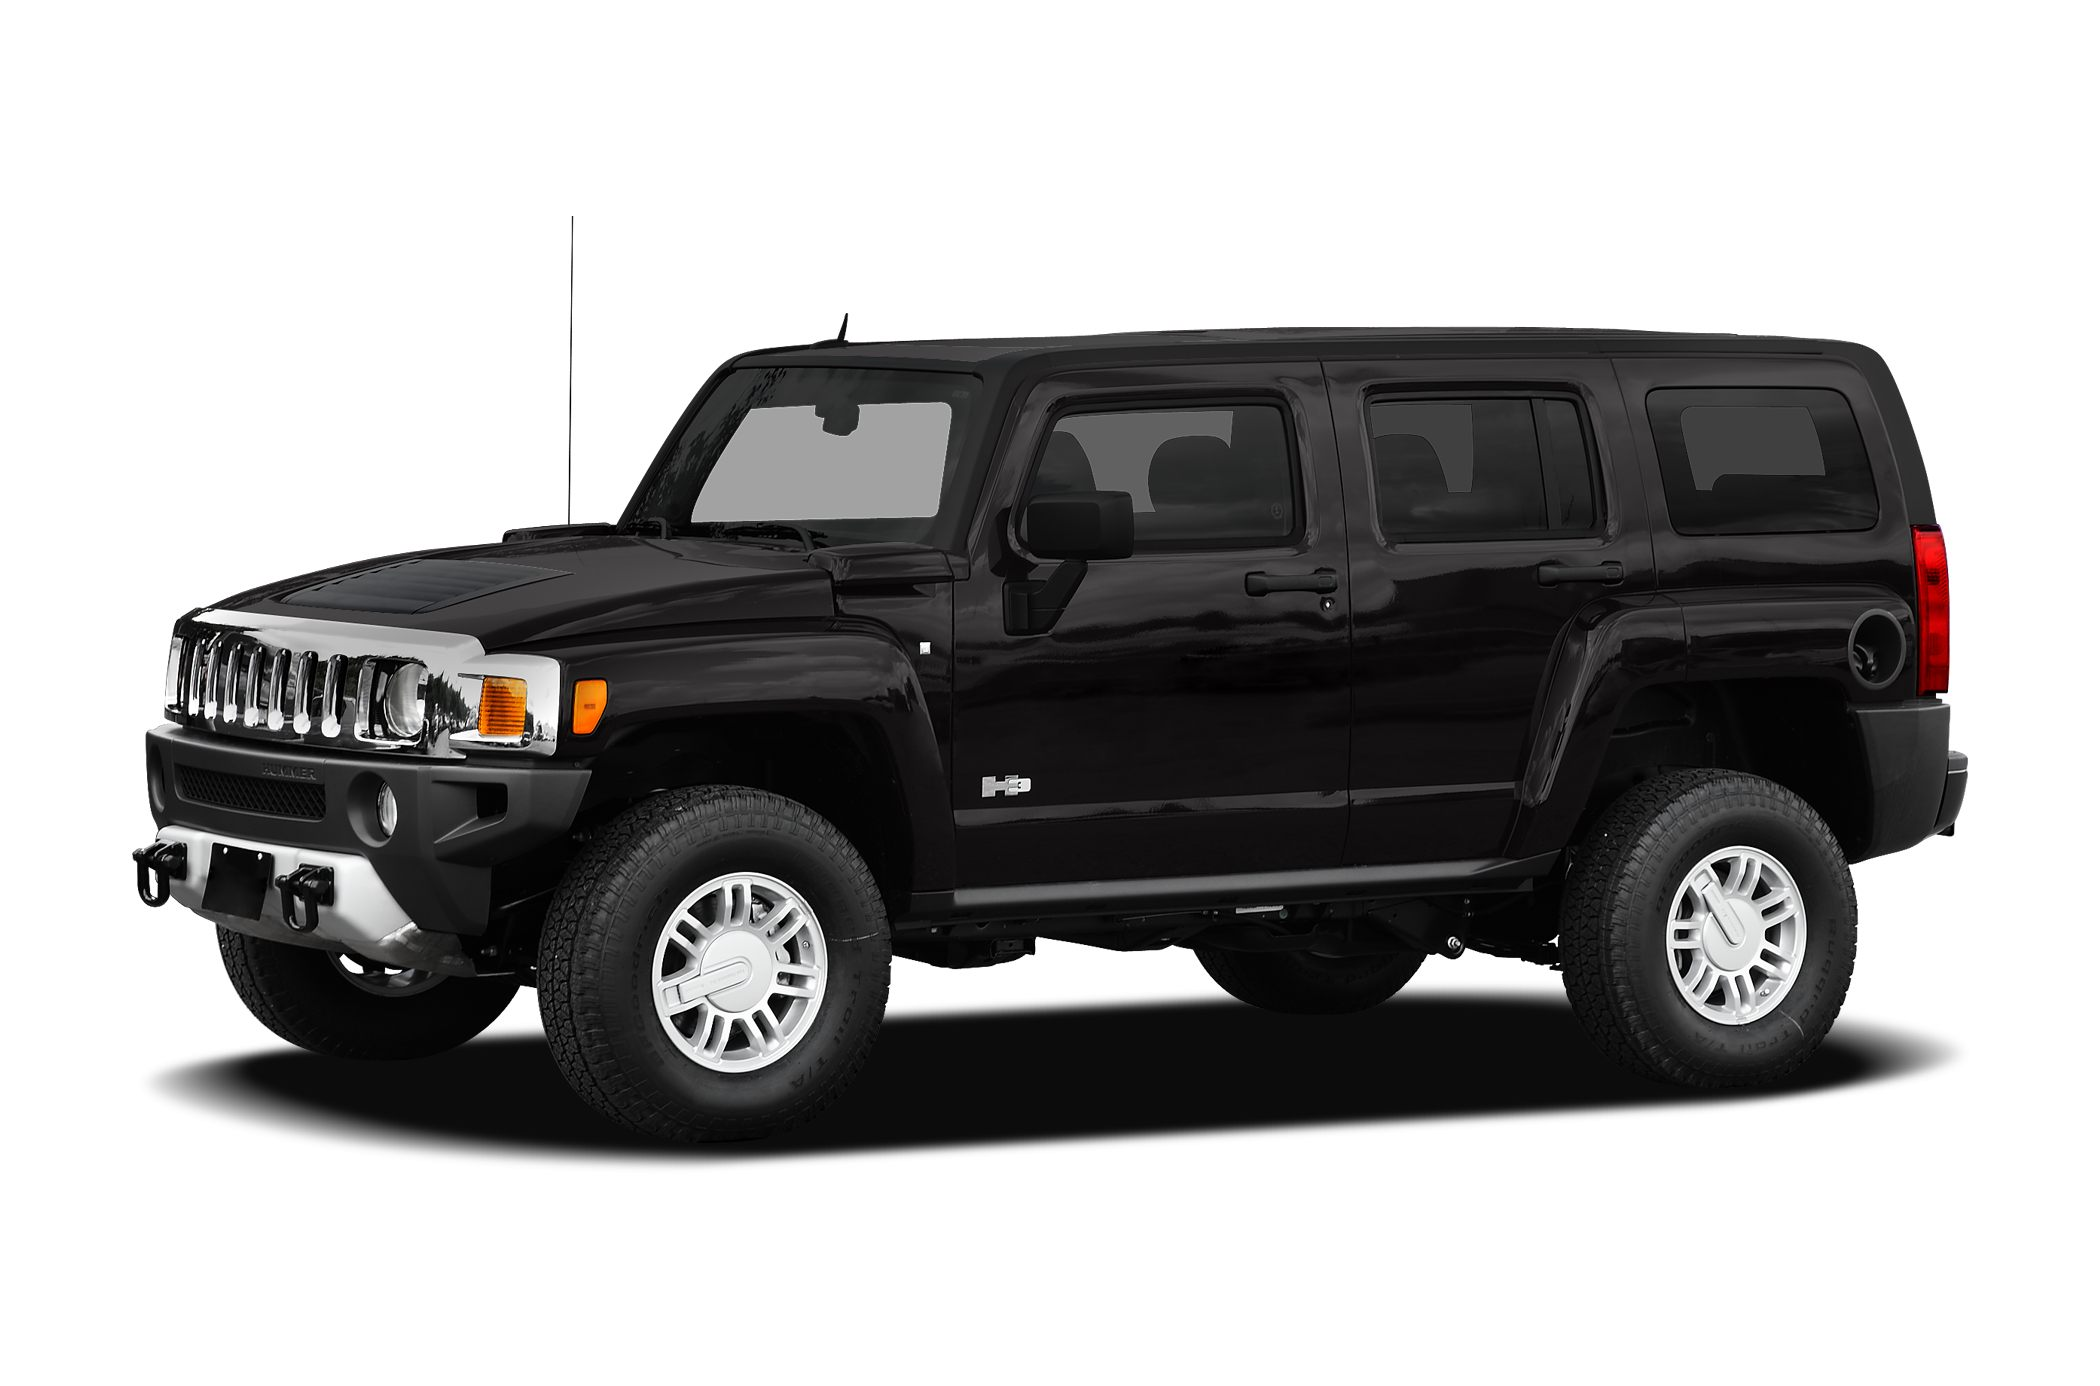 2008 Hummer H3 SUV for sale in Jacksonville for $17,495 with 89,535 miles.